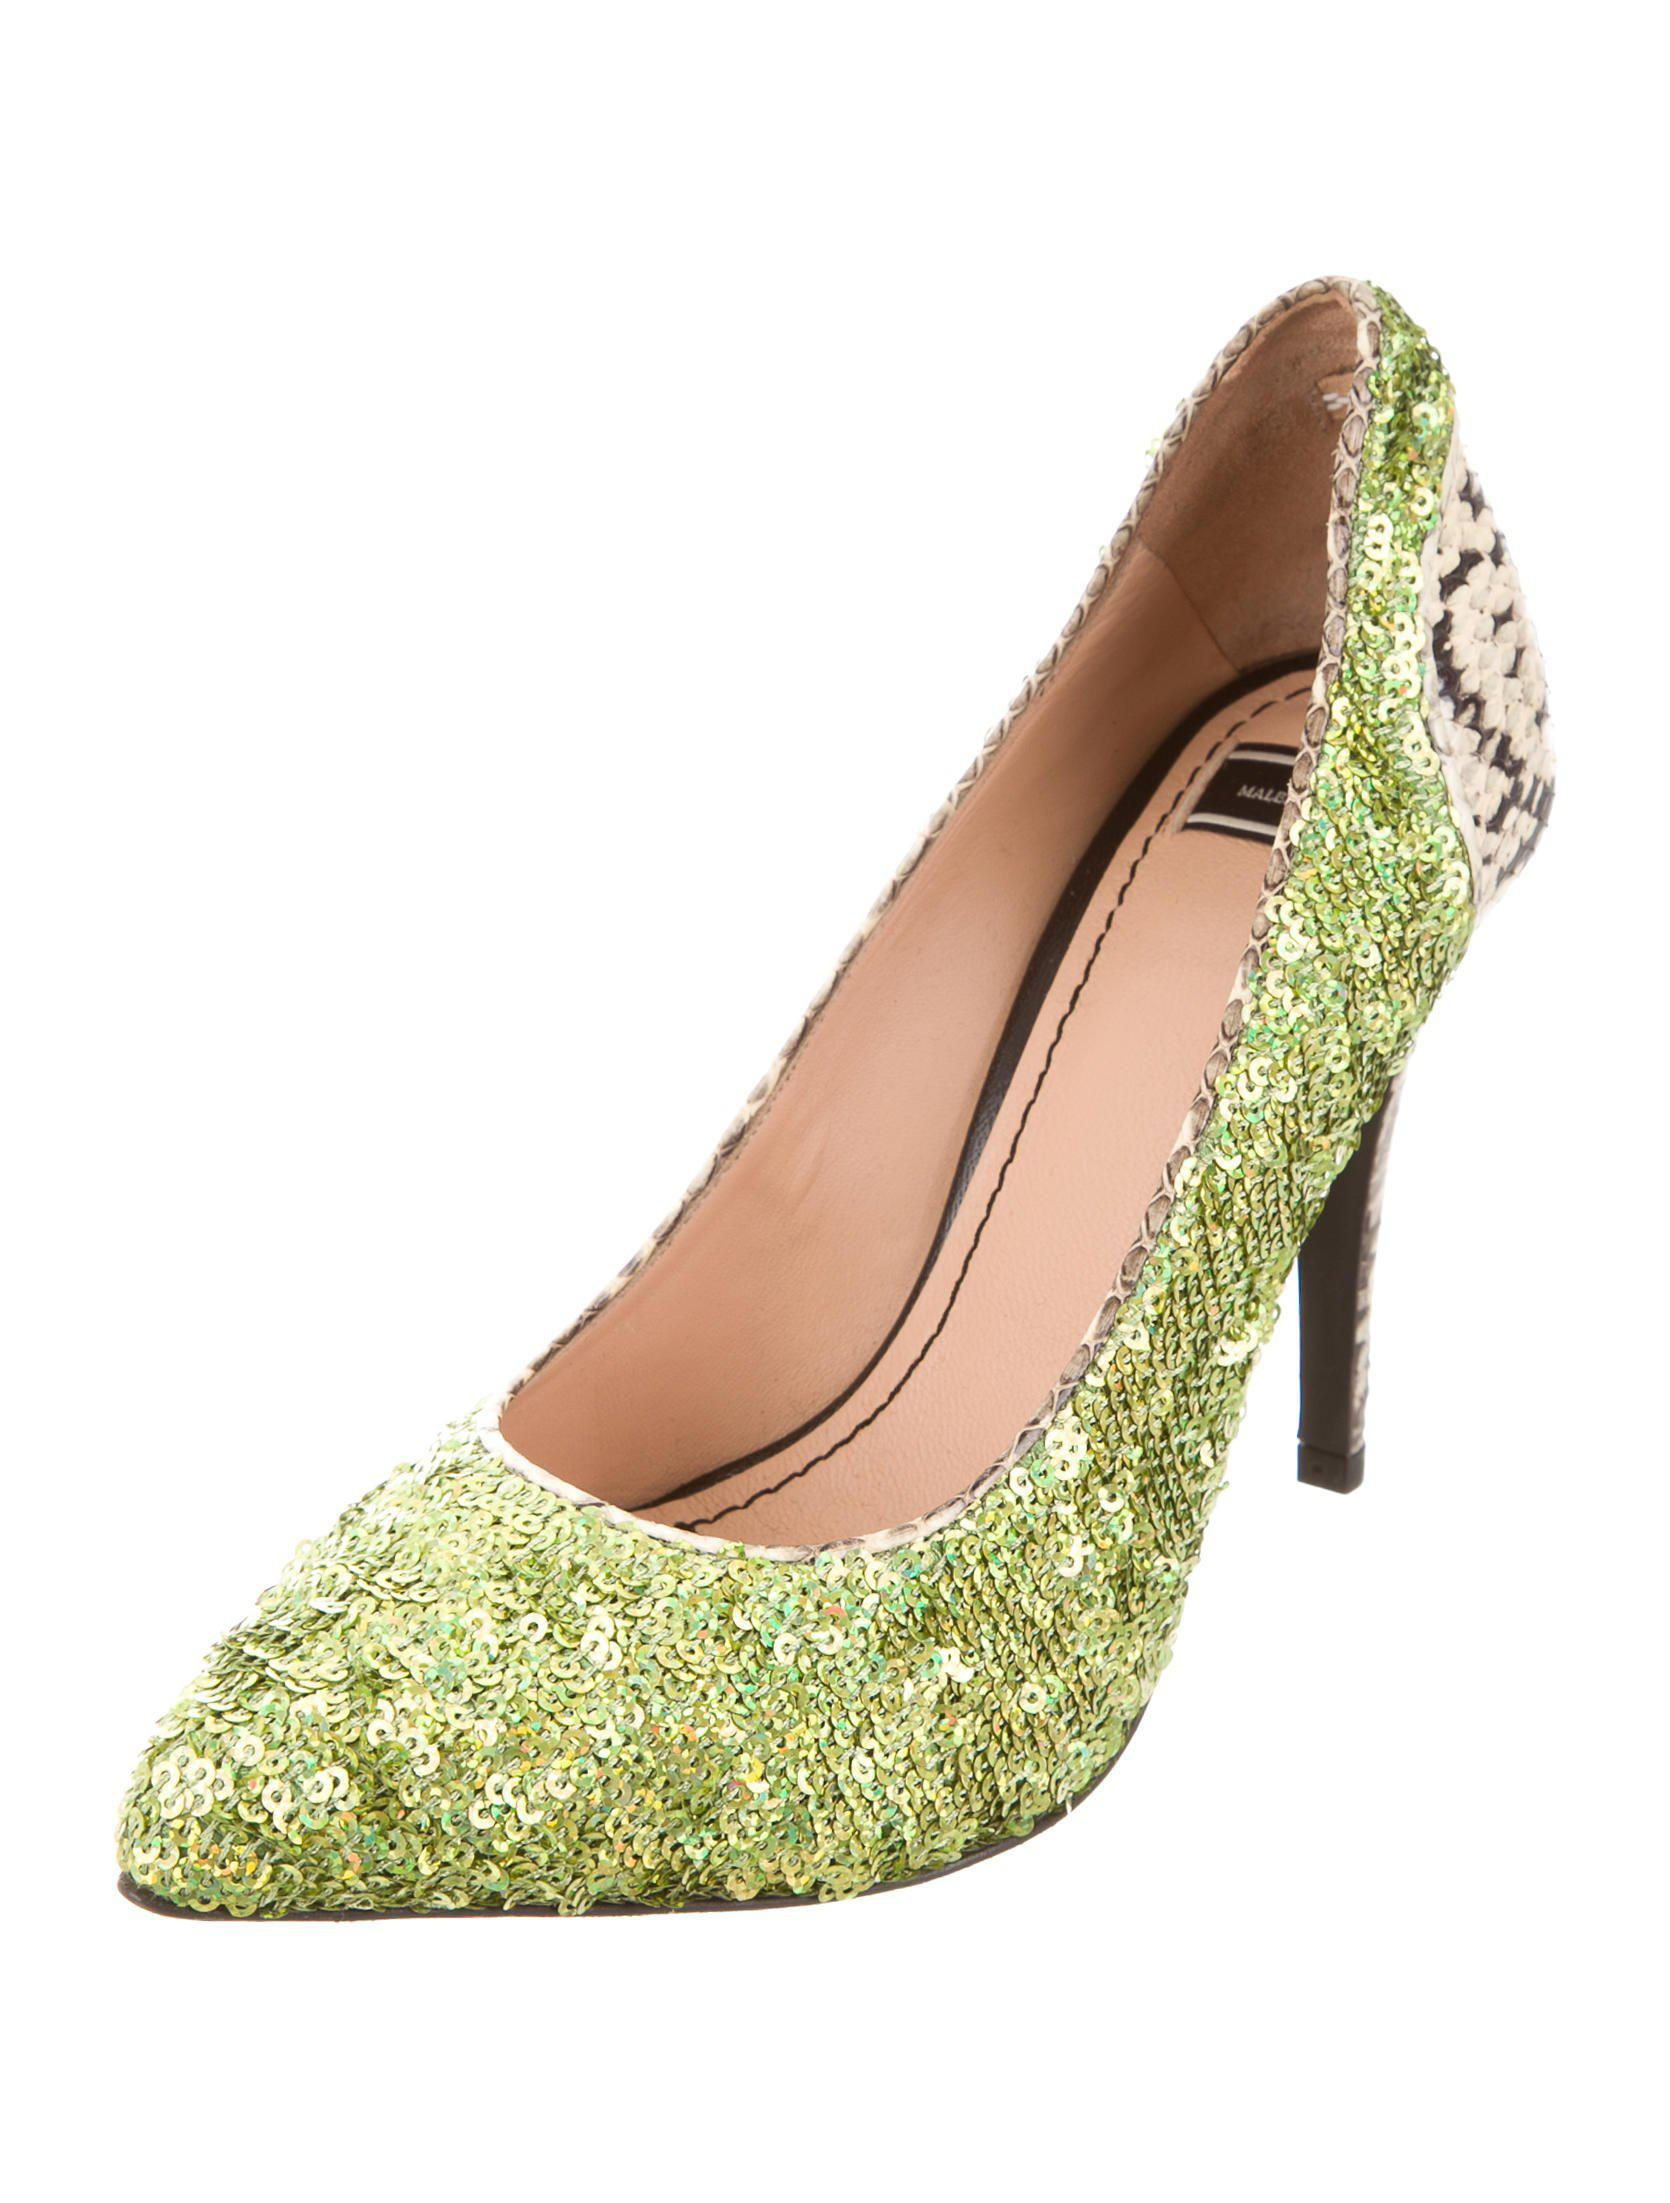 exclusive cheap online By Malene Birger Sequined Snakeskin-Trimmed Pumps cheap the cheapest 2014 newest online cheap sale visit new gwLyCT